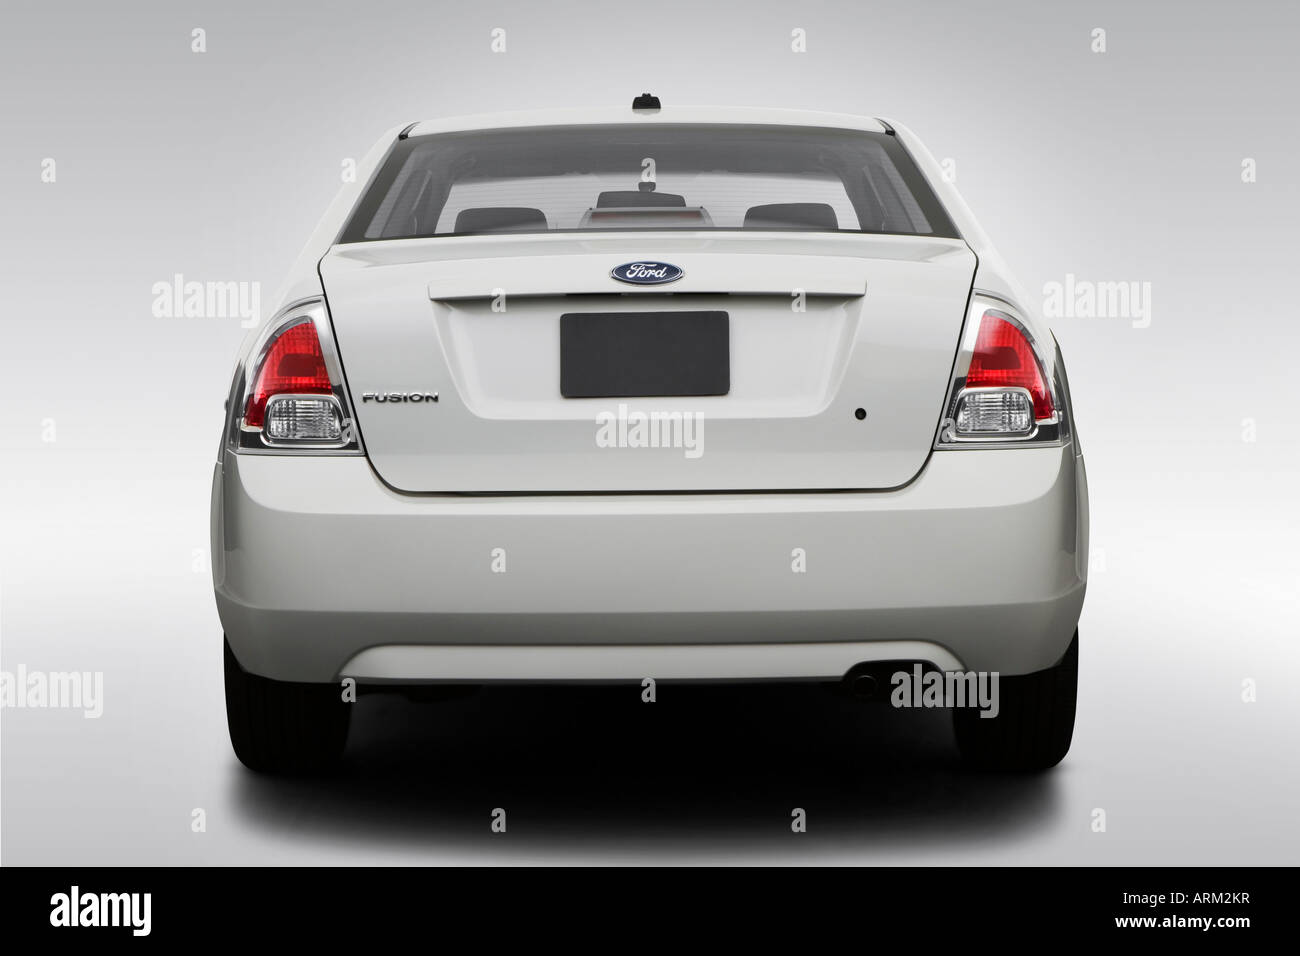 2008 Ford Fusion S in White - Low/Wide Rear - Stock Image